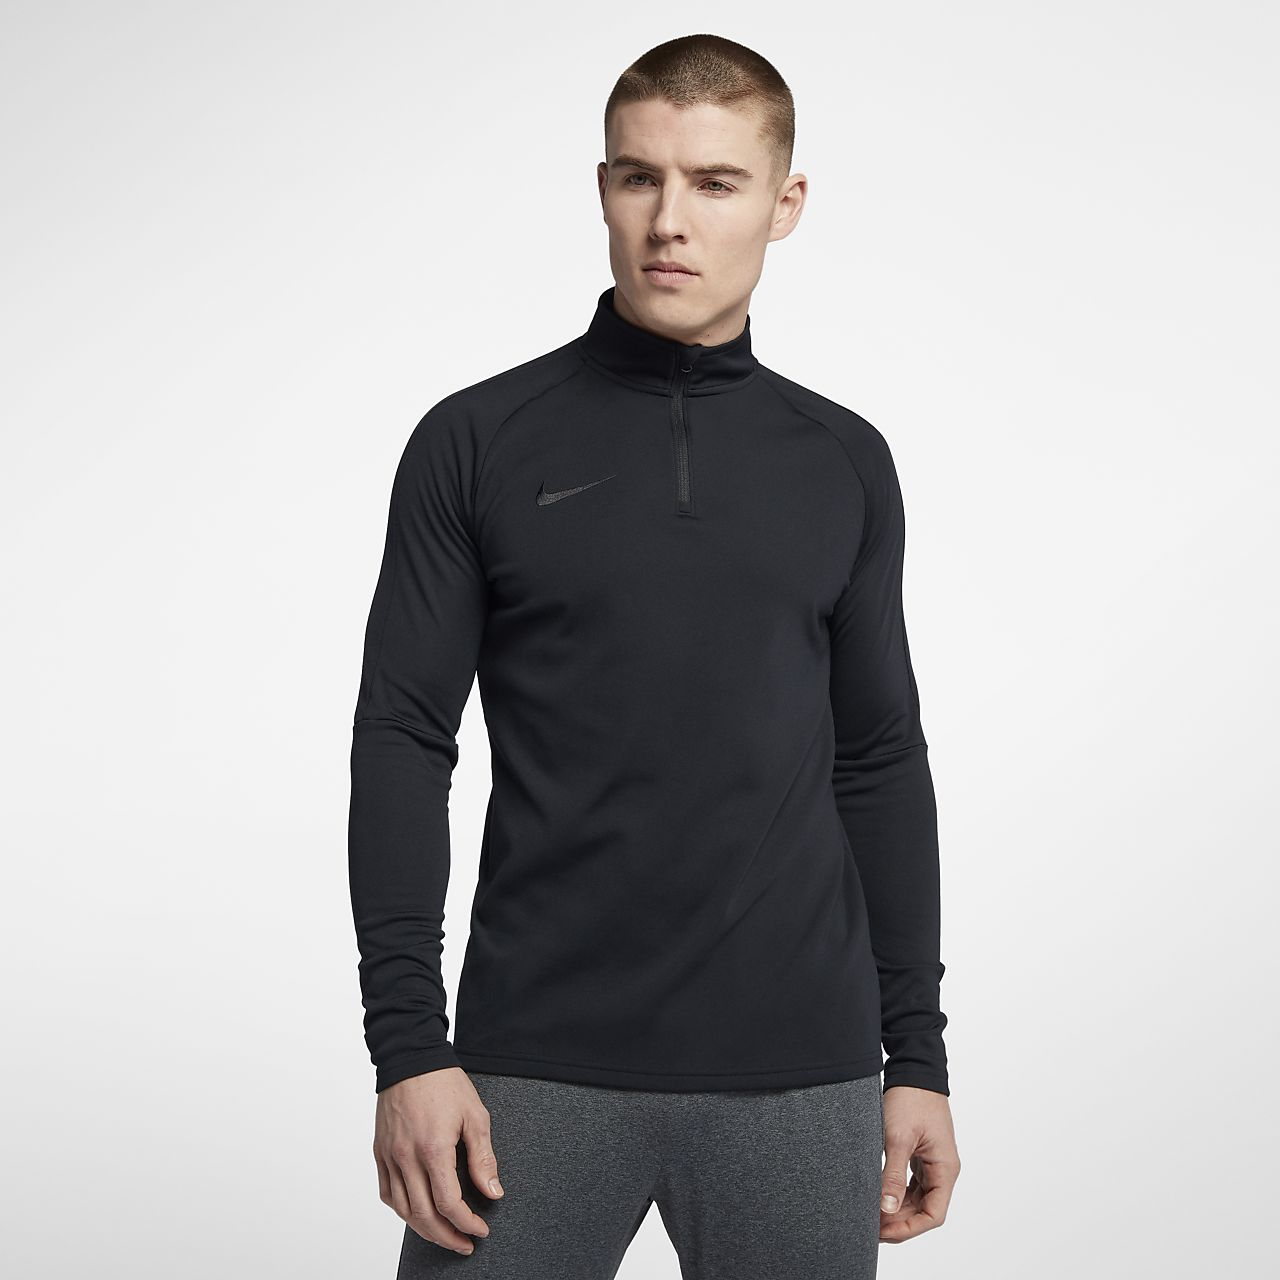 Academy Haut 14 Dri Nike Pour De Homme Football Zip Be Fit nqfwrU0qx